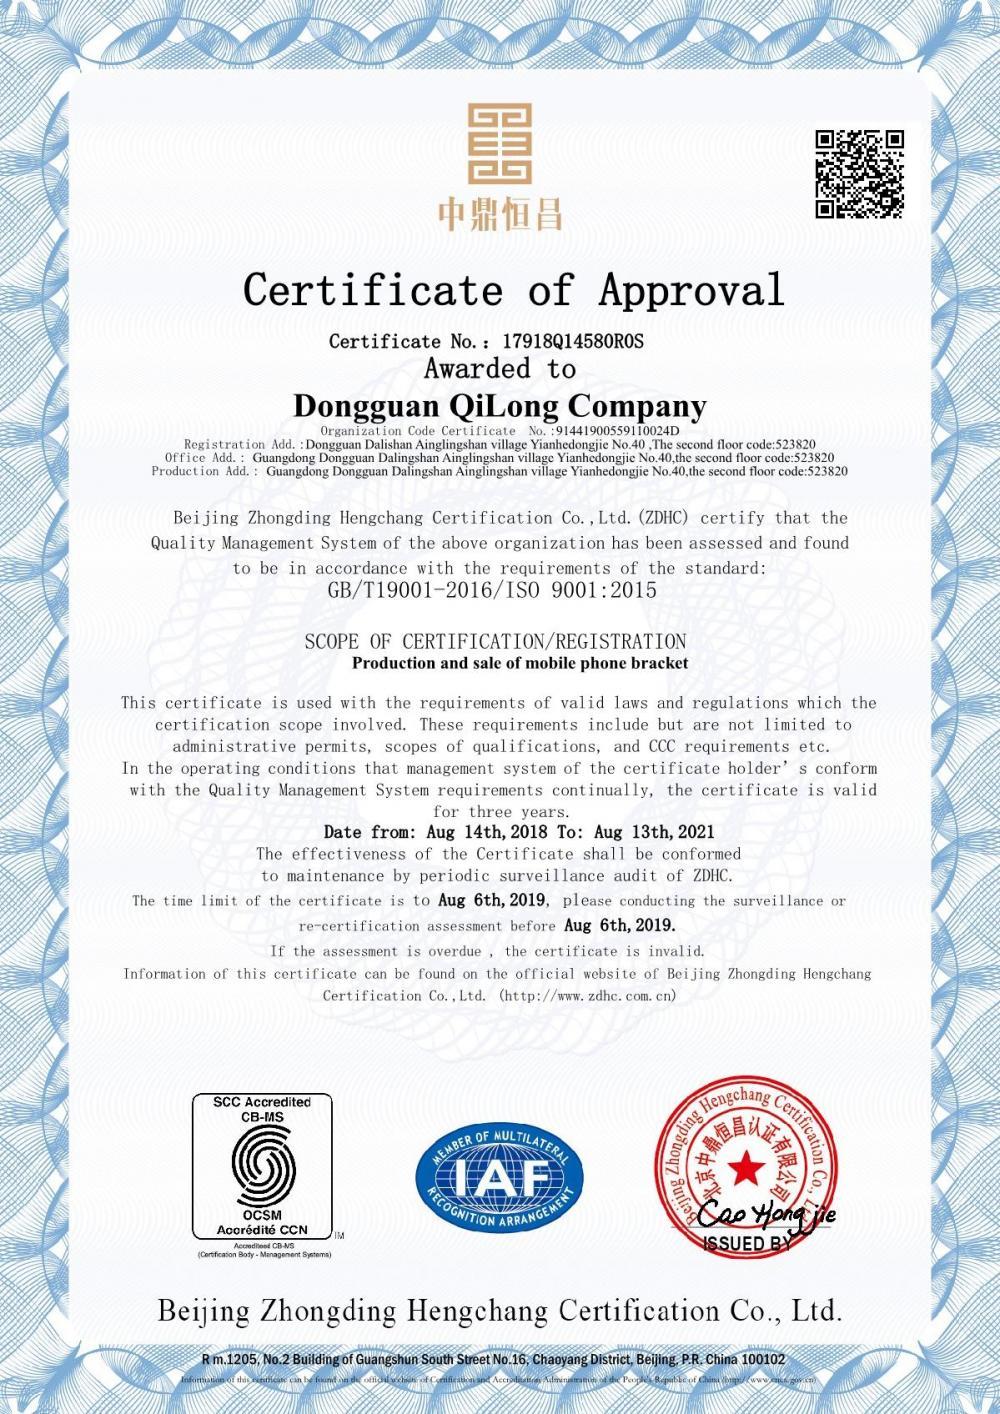 Certificate of ISO 9001:2015